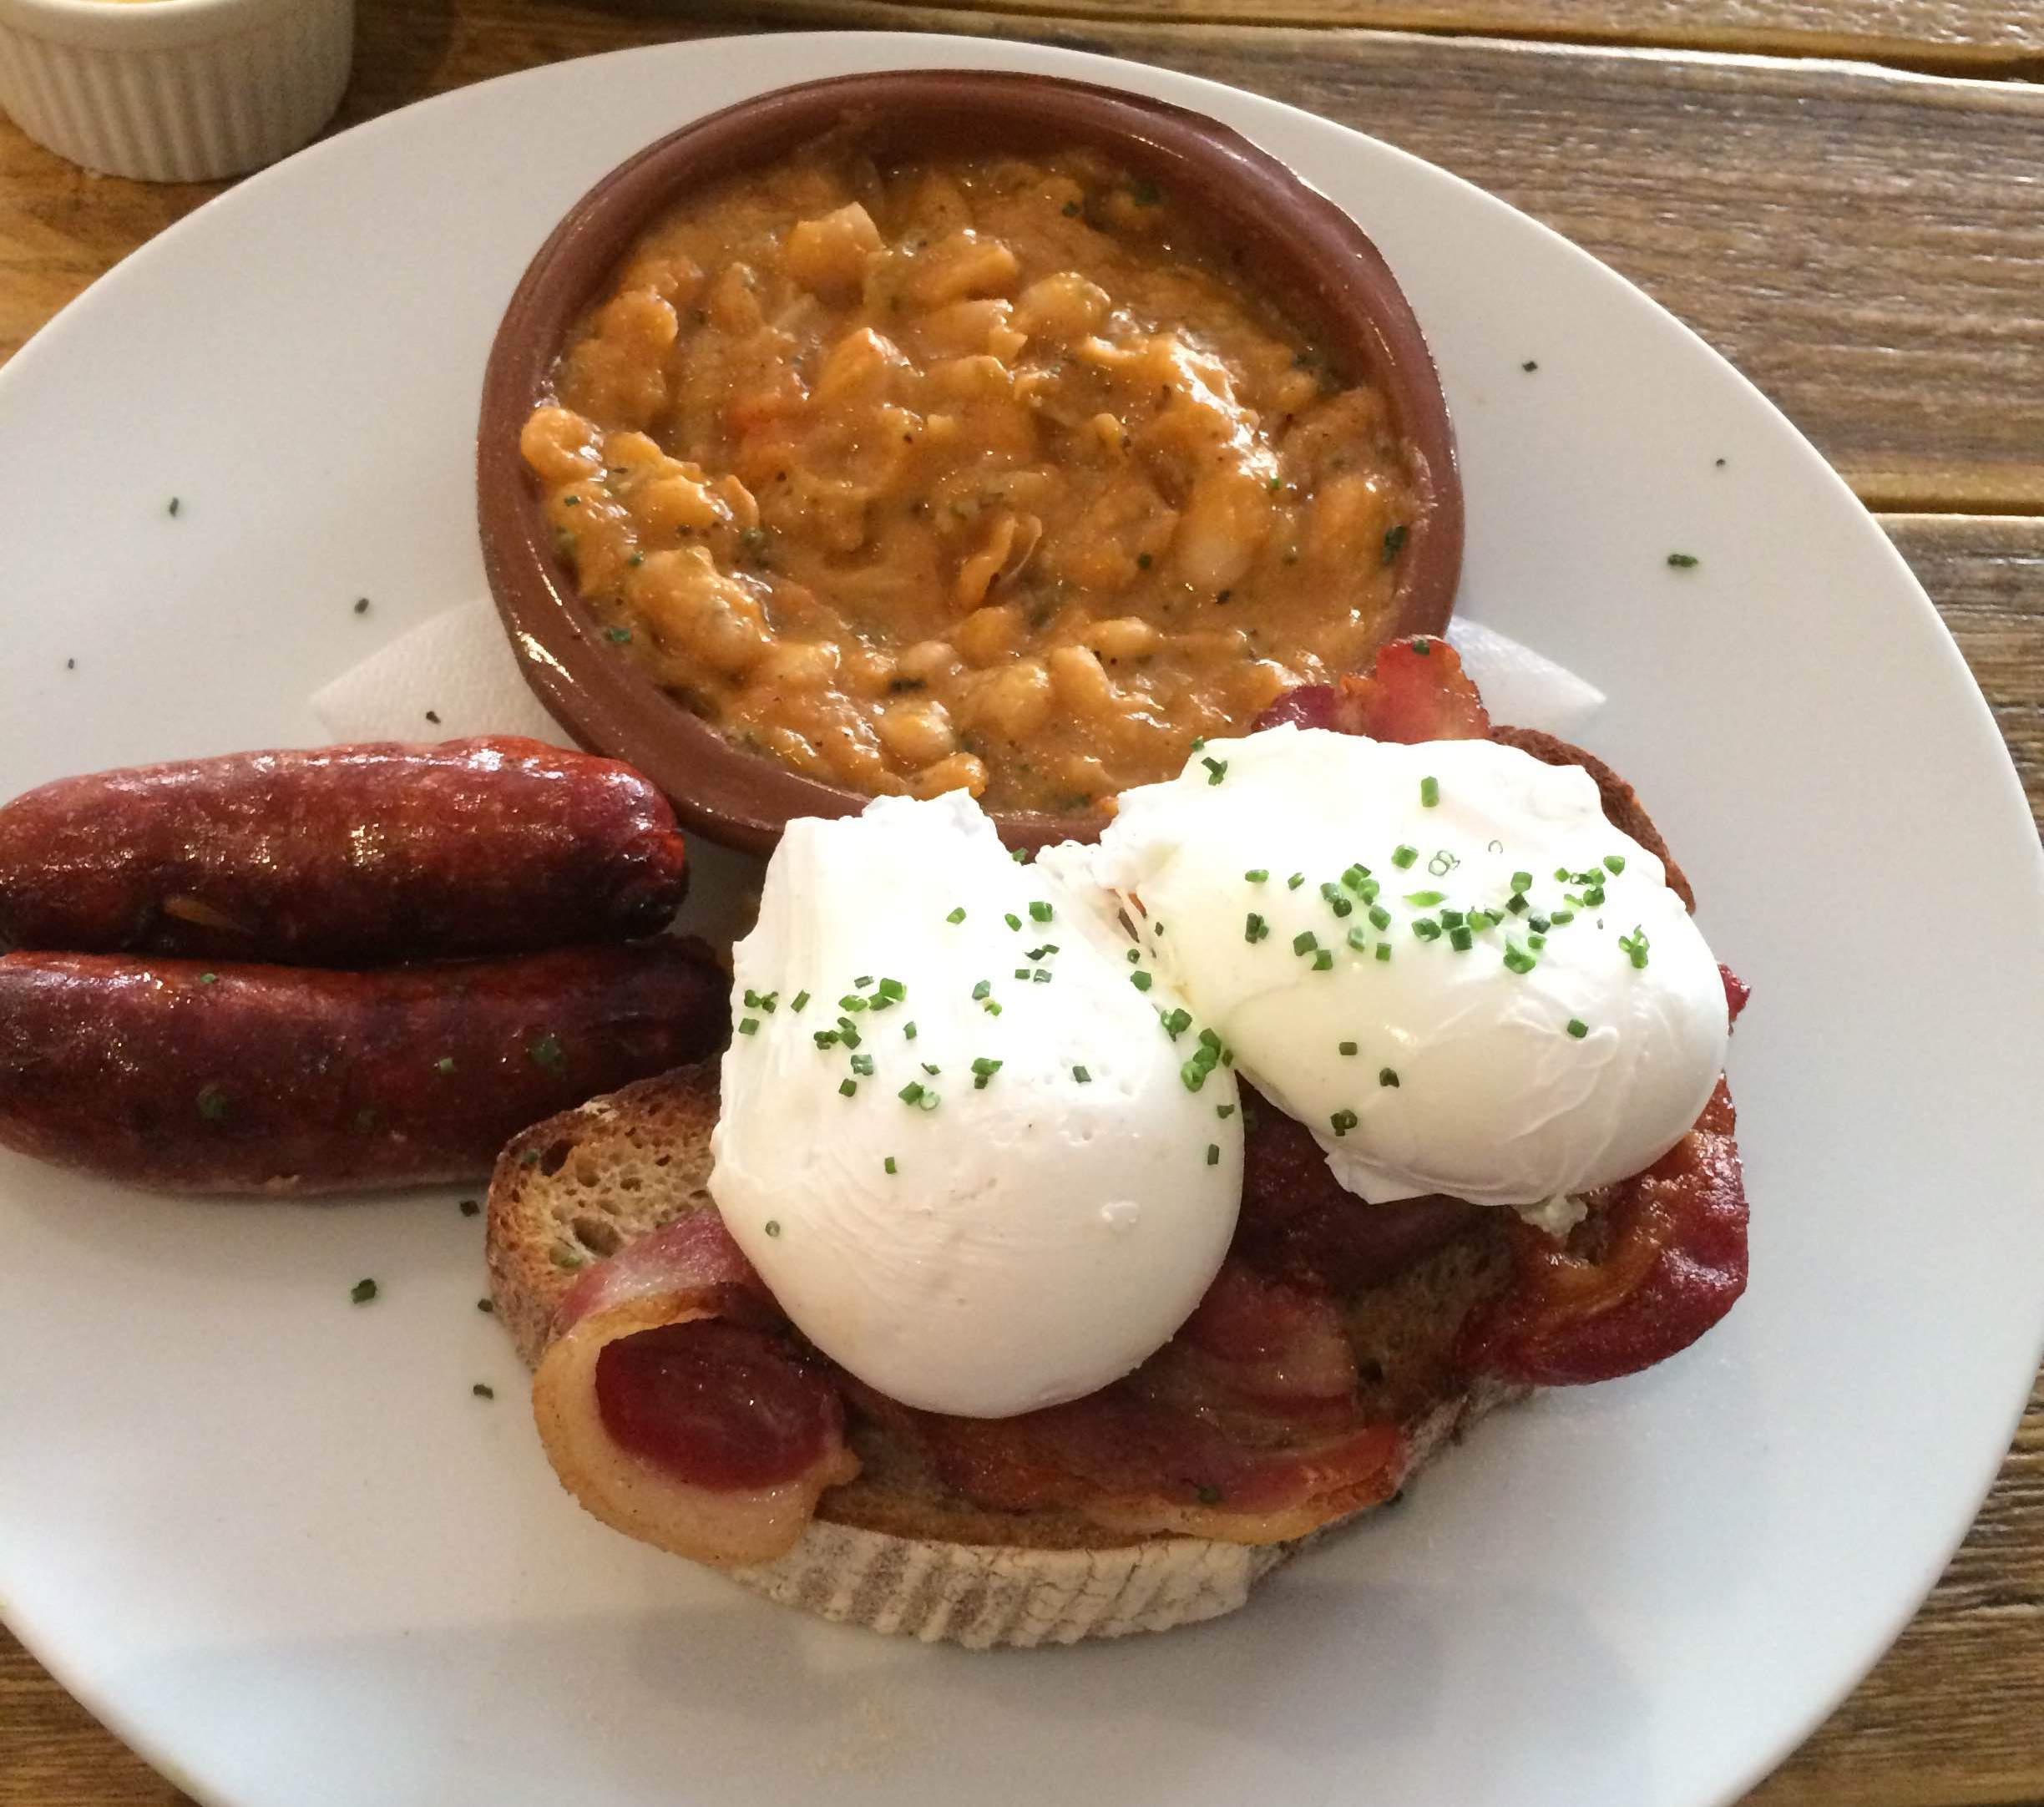 Drovers dog - breakfast cassoulet